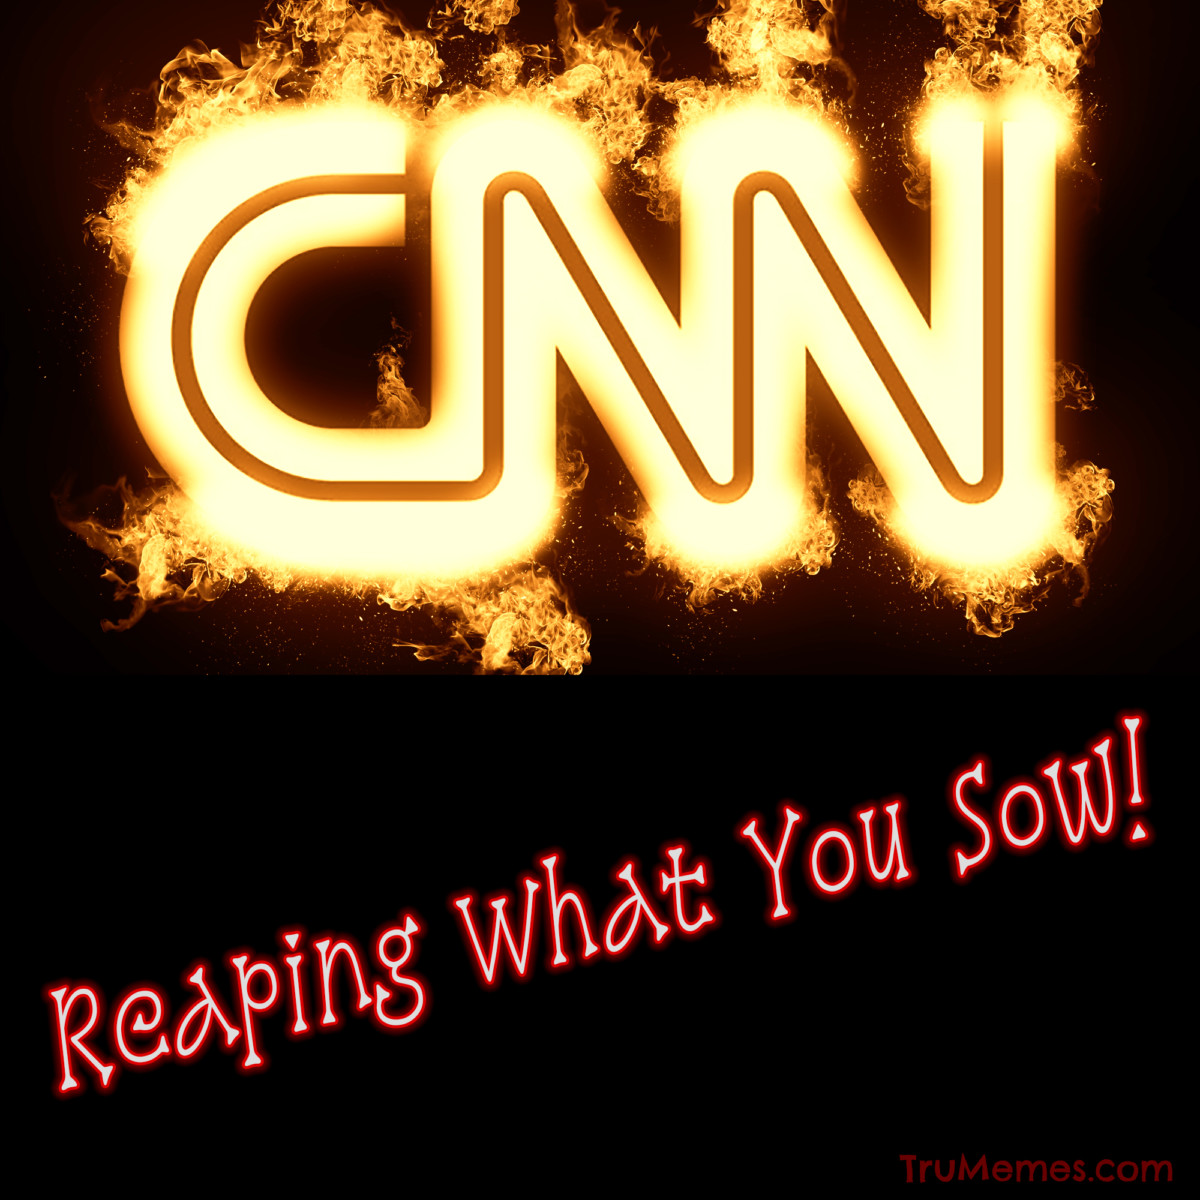 CNN On Fire Reaping What You Sow-2